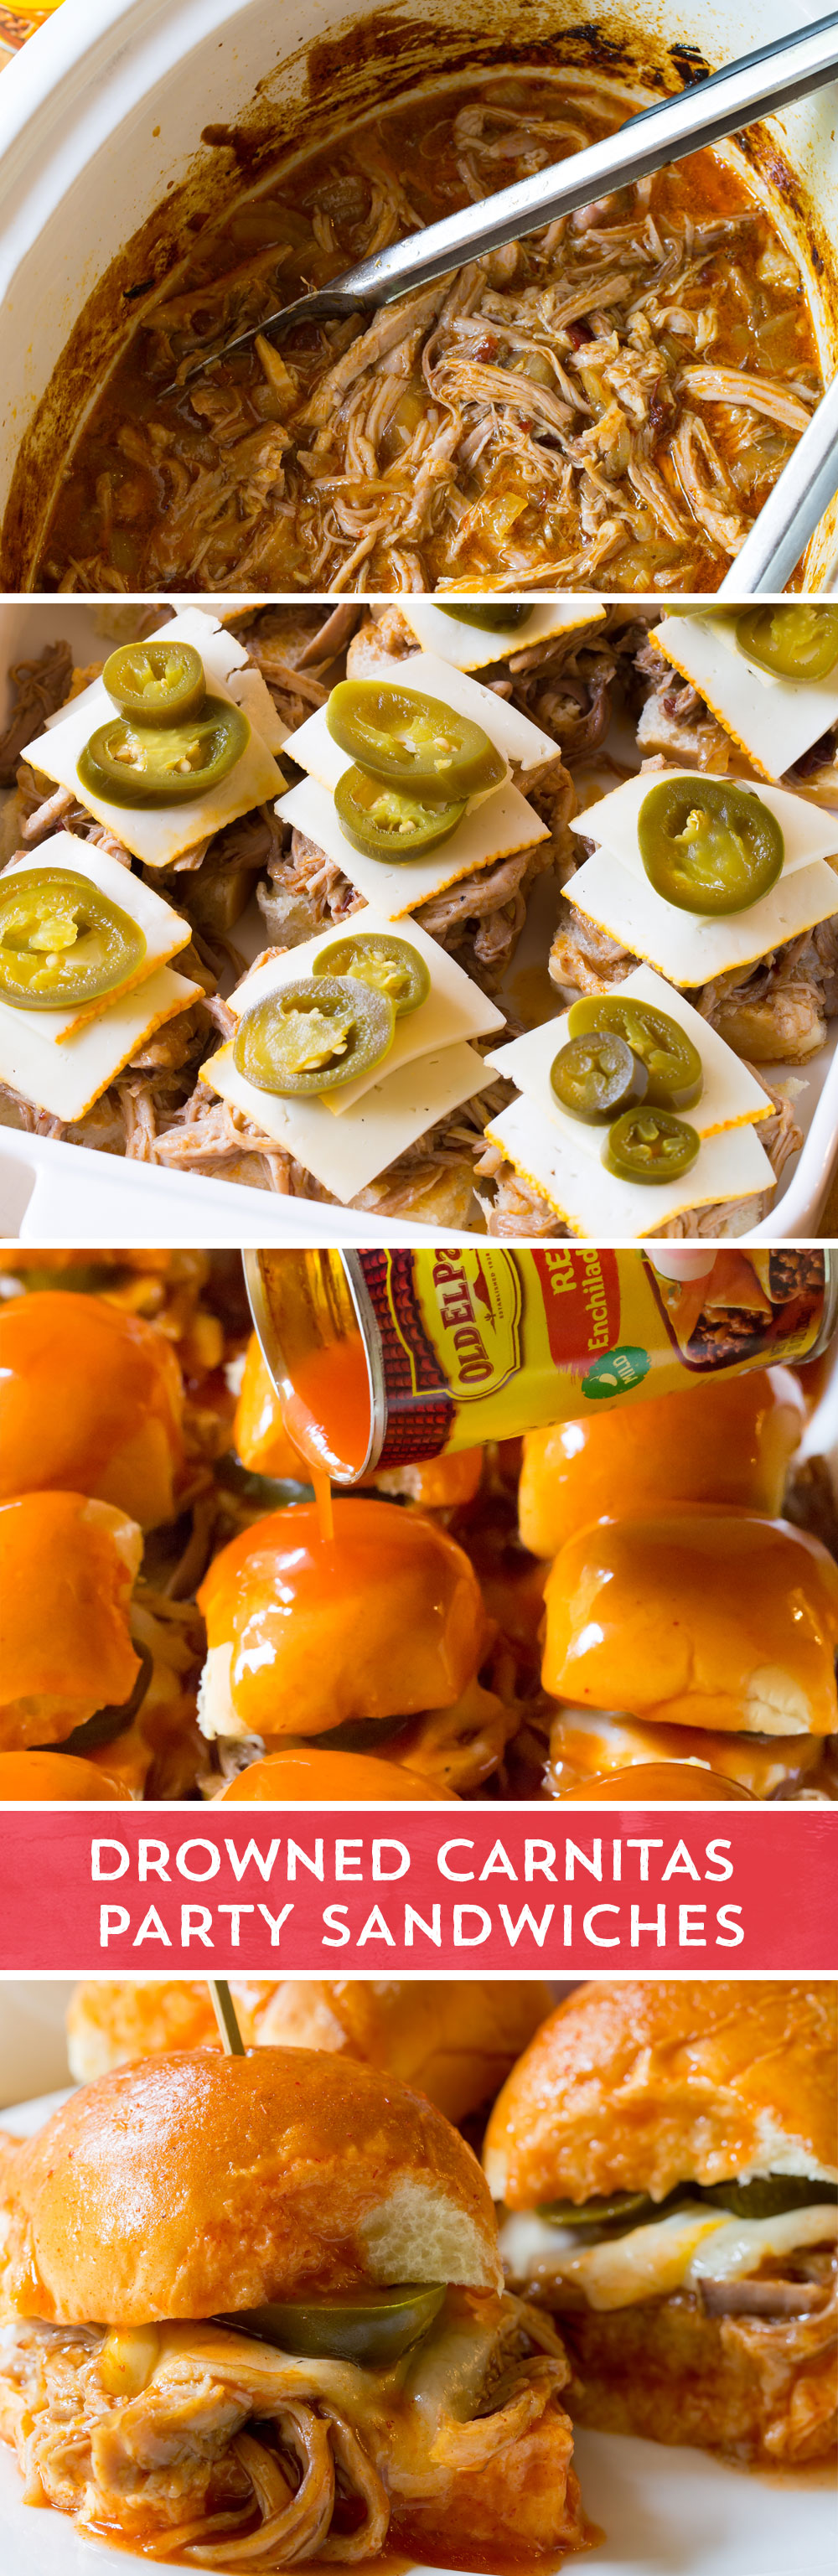 Looking for a game day party appetizer that will please a